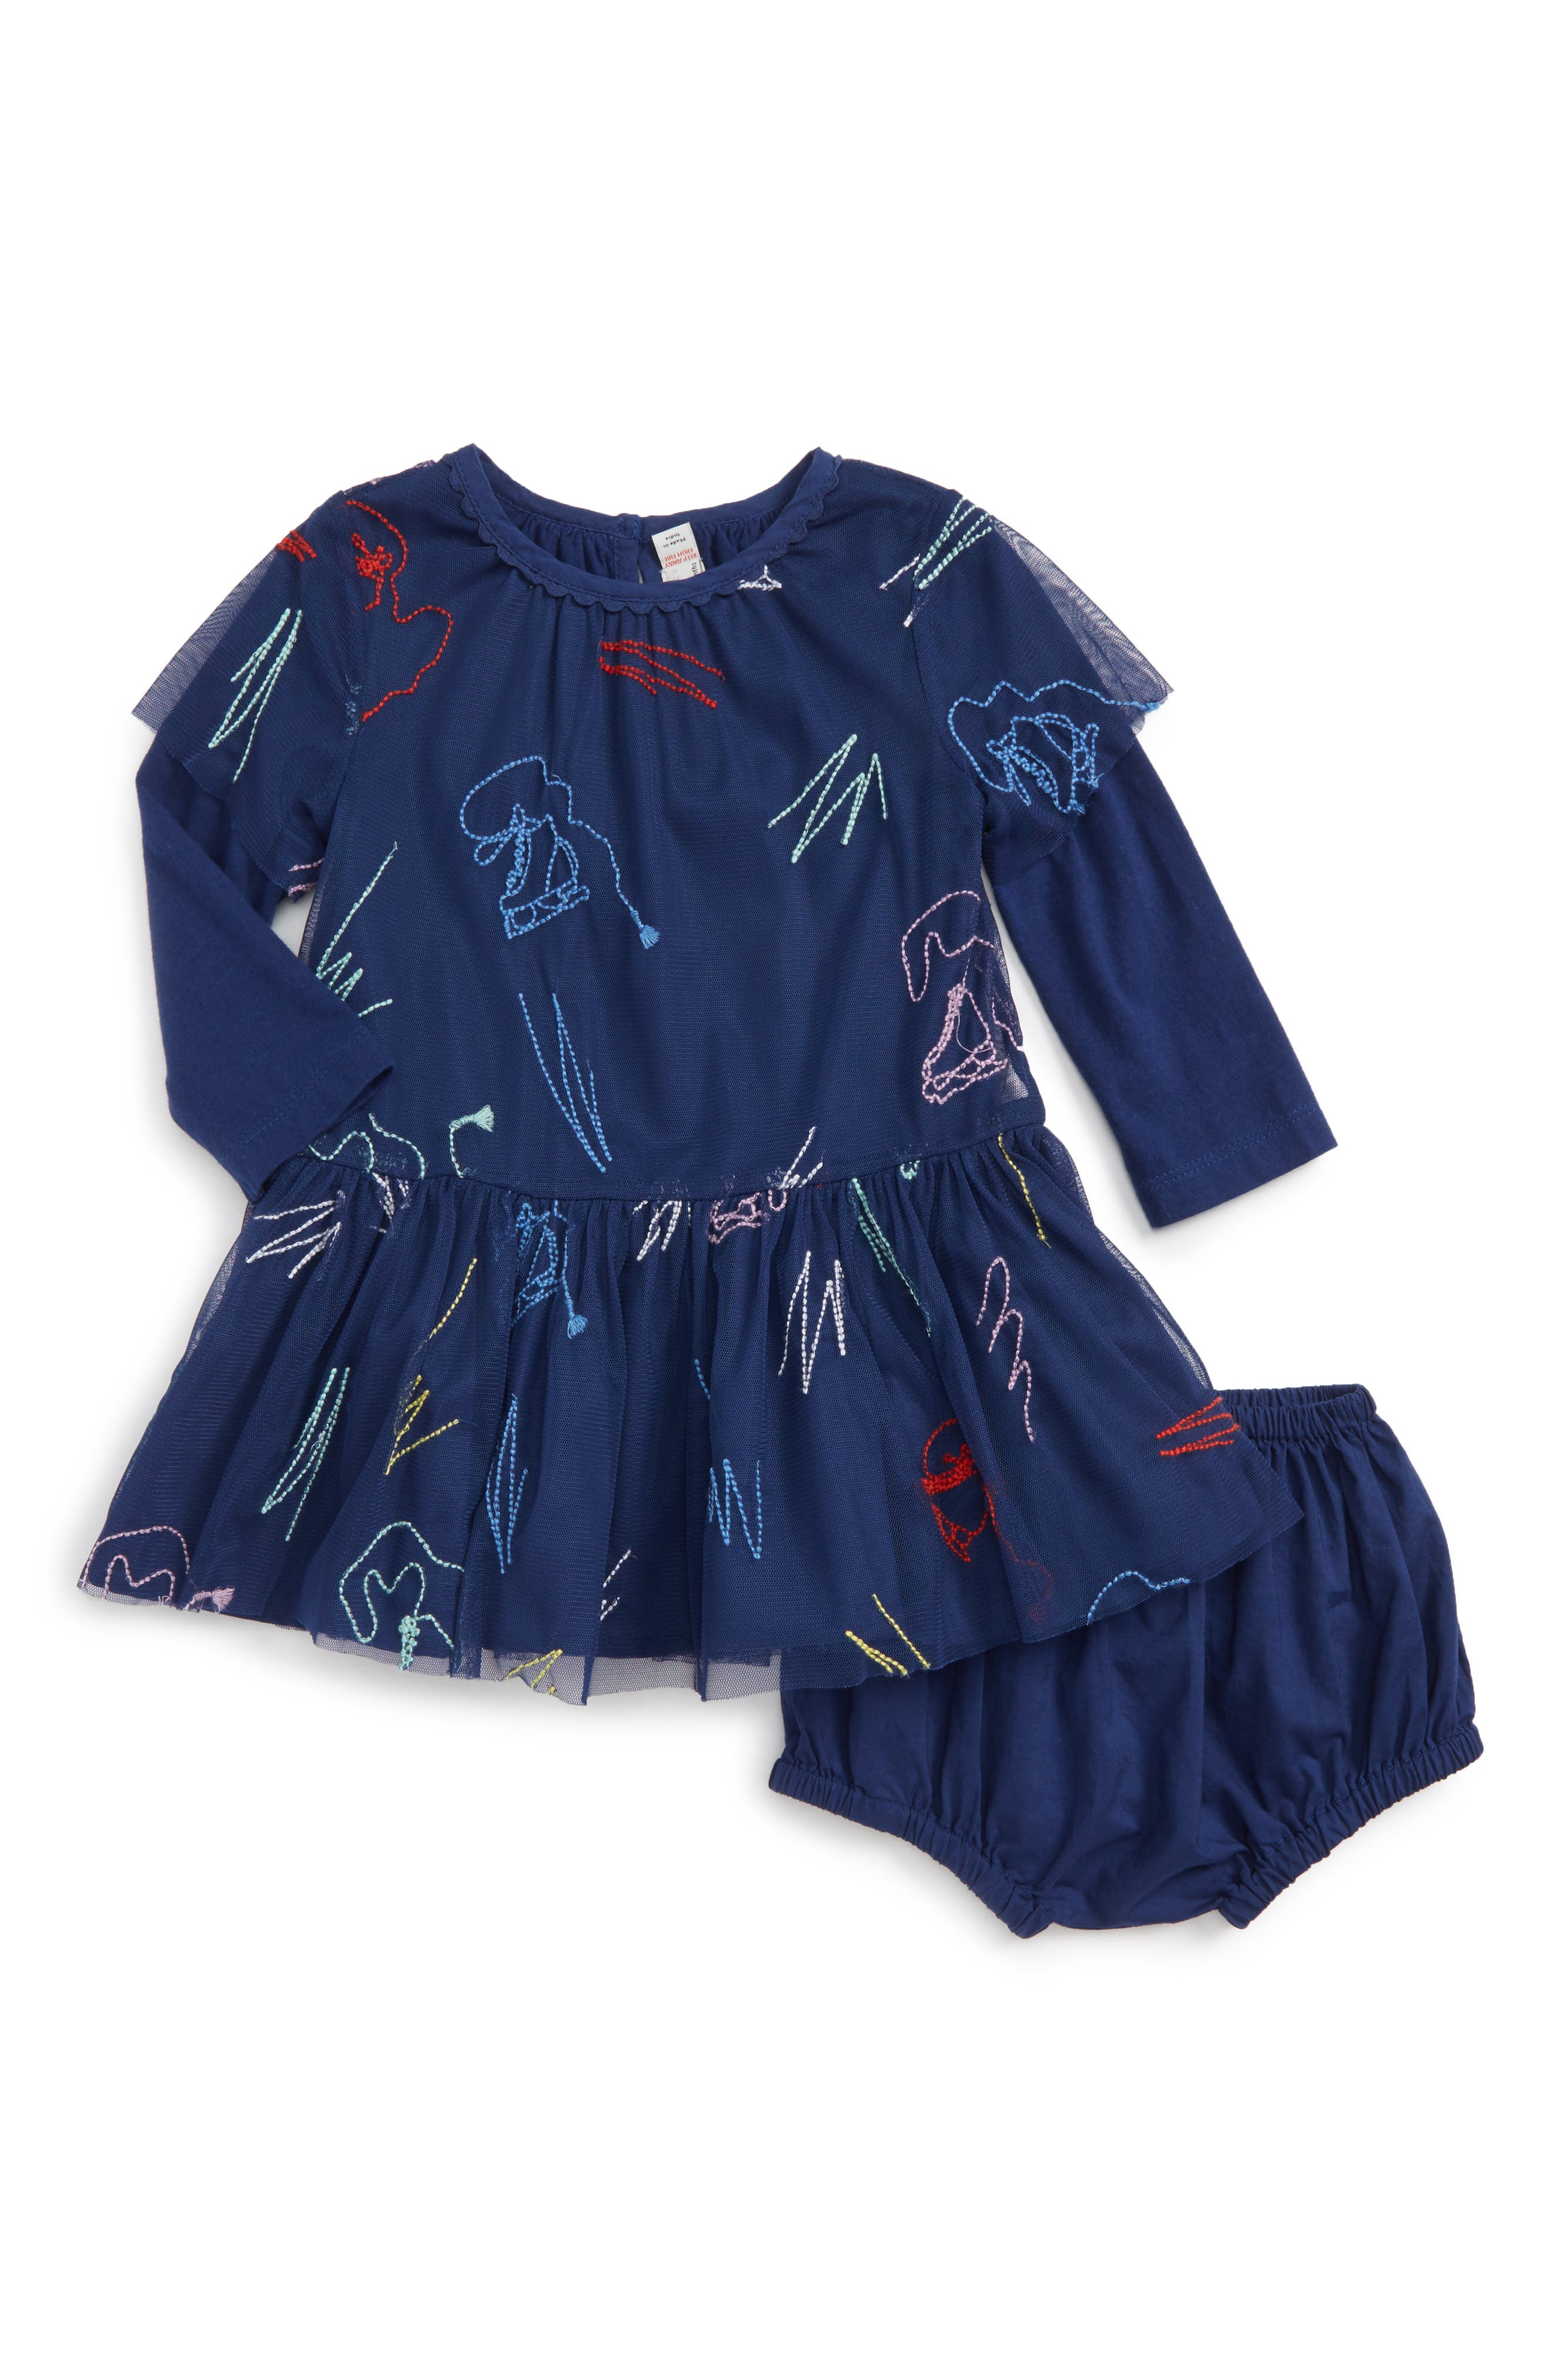 Kids Embroidered Tulle Dress,                             Main thumbnail 1, color,                             400